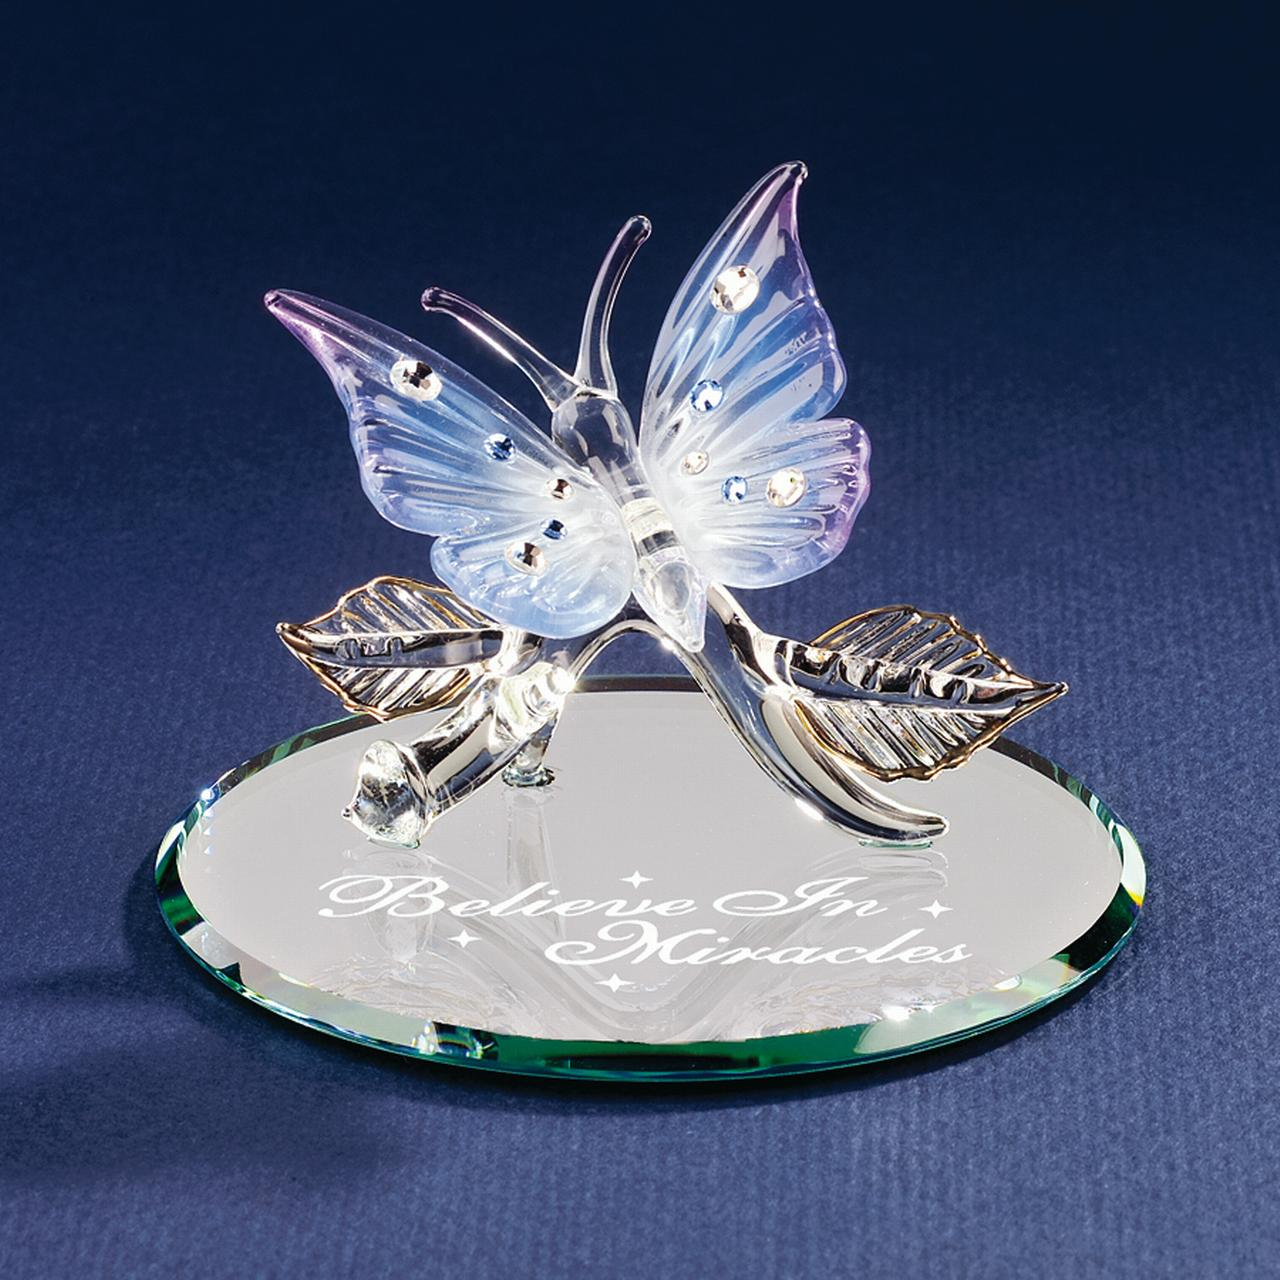 Butterfly Believe In Miracles Glass Figurine Floral Garden Nautical Glas Baron For Women